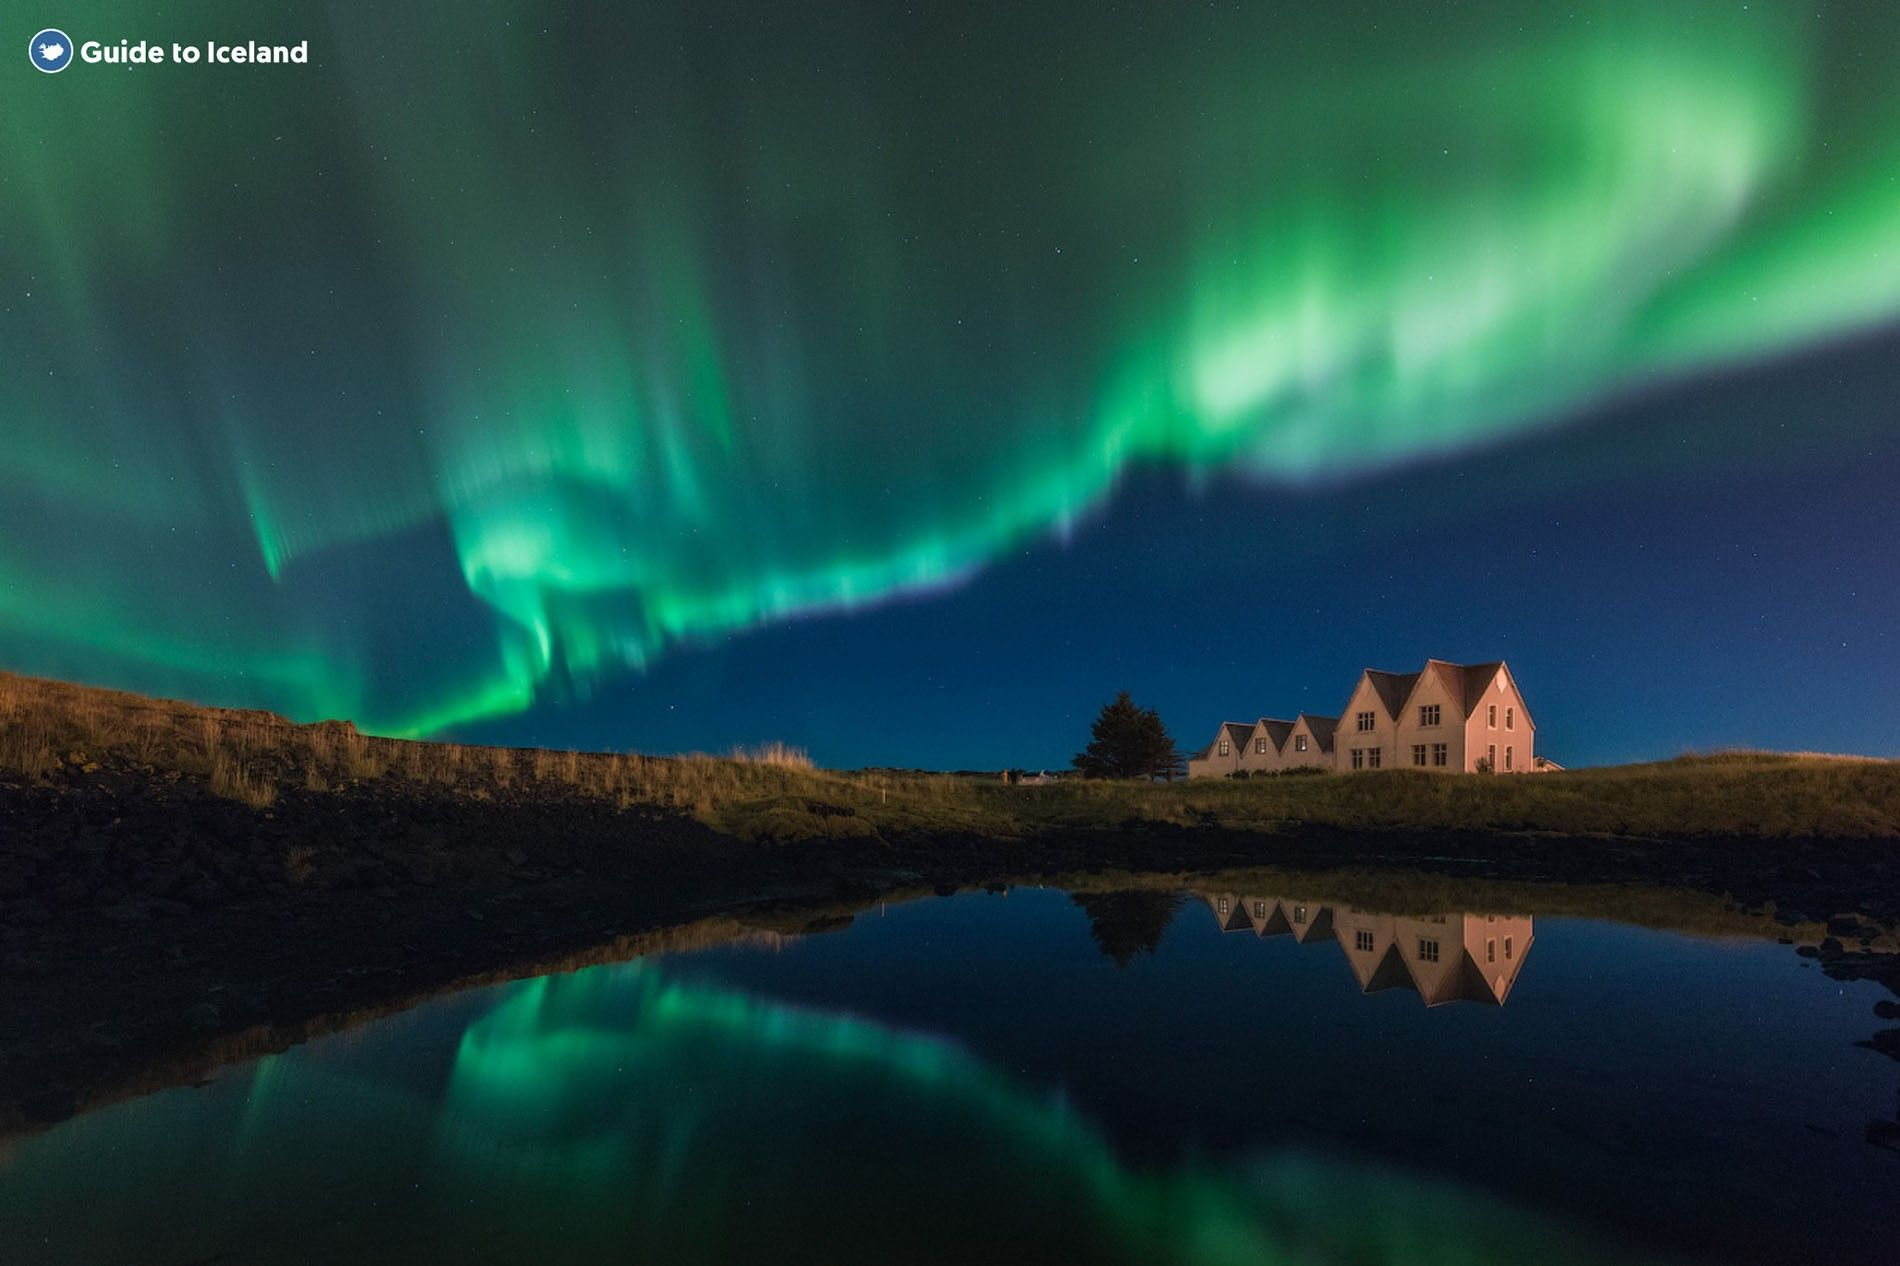 The Northern Lights over Thingvellir National Park, one of the best palces to spot them in Iceland.